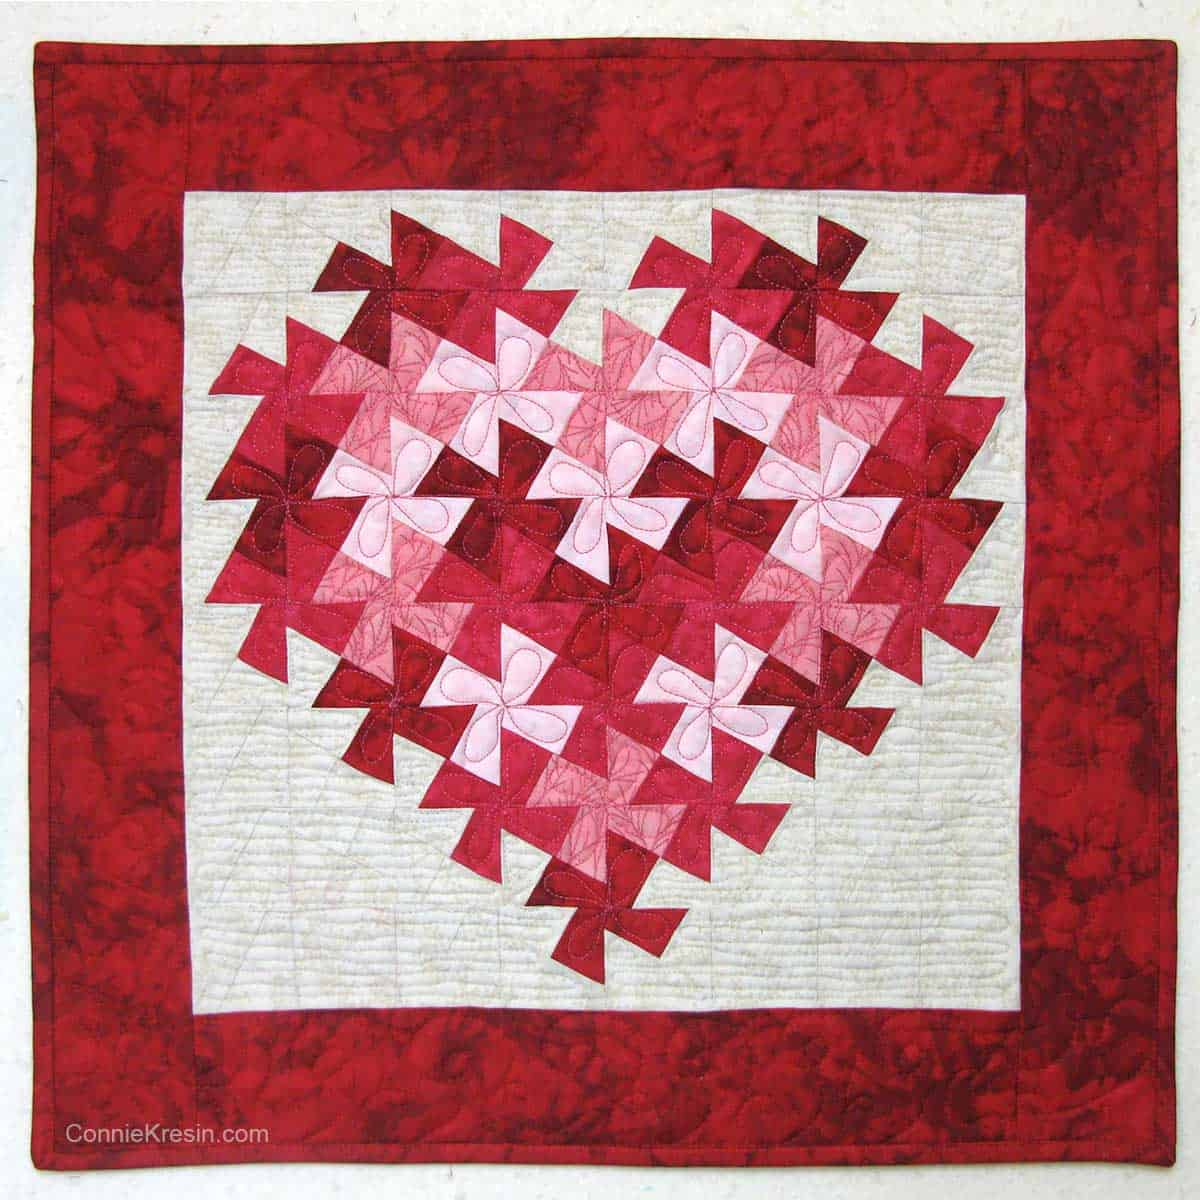 Twisting heart quilt wall hanging